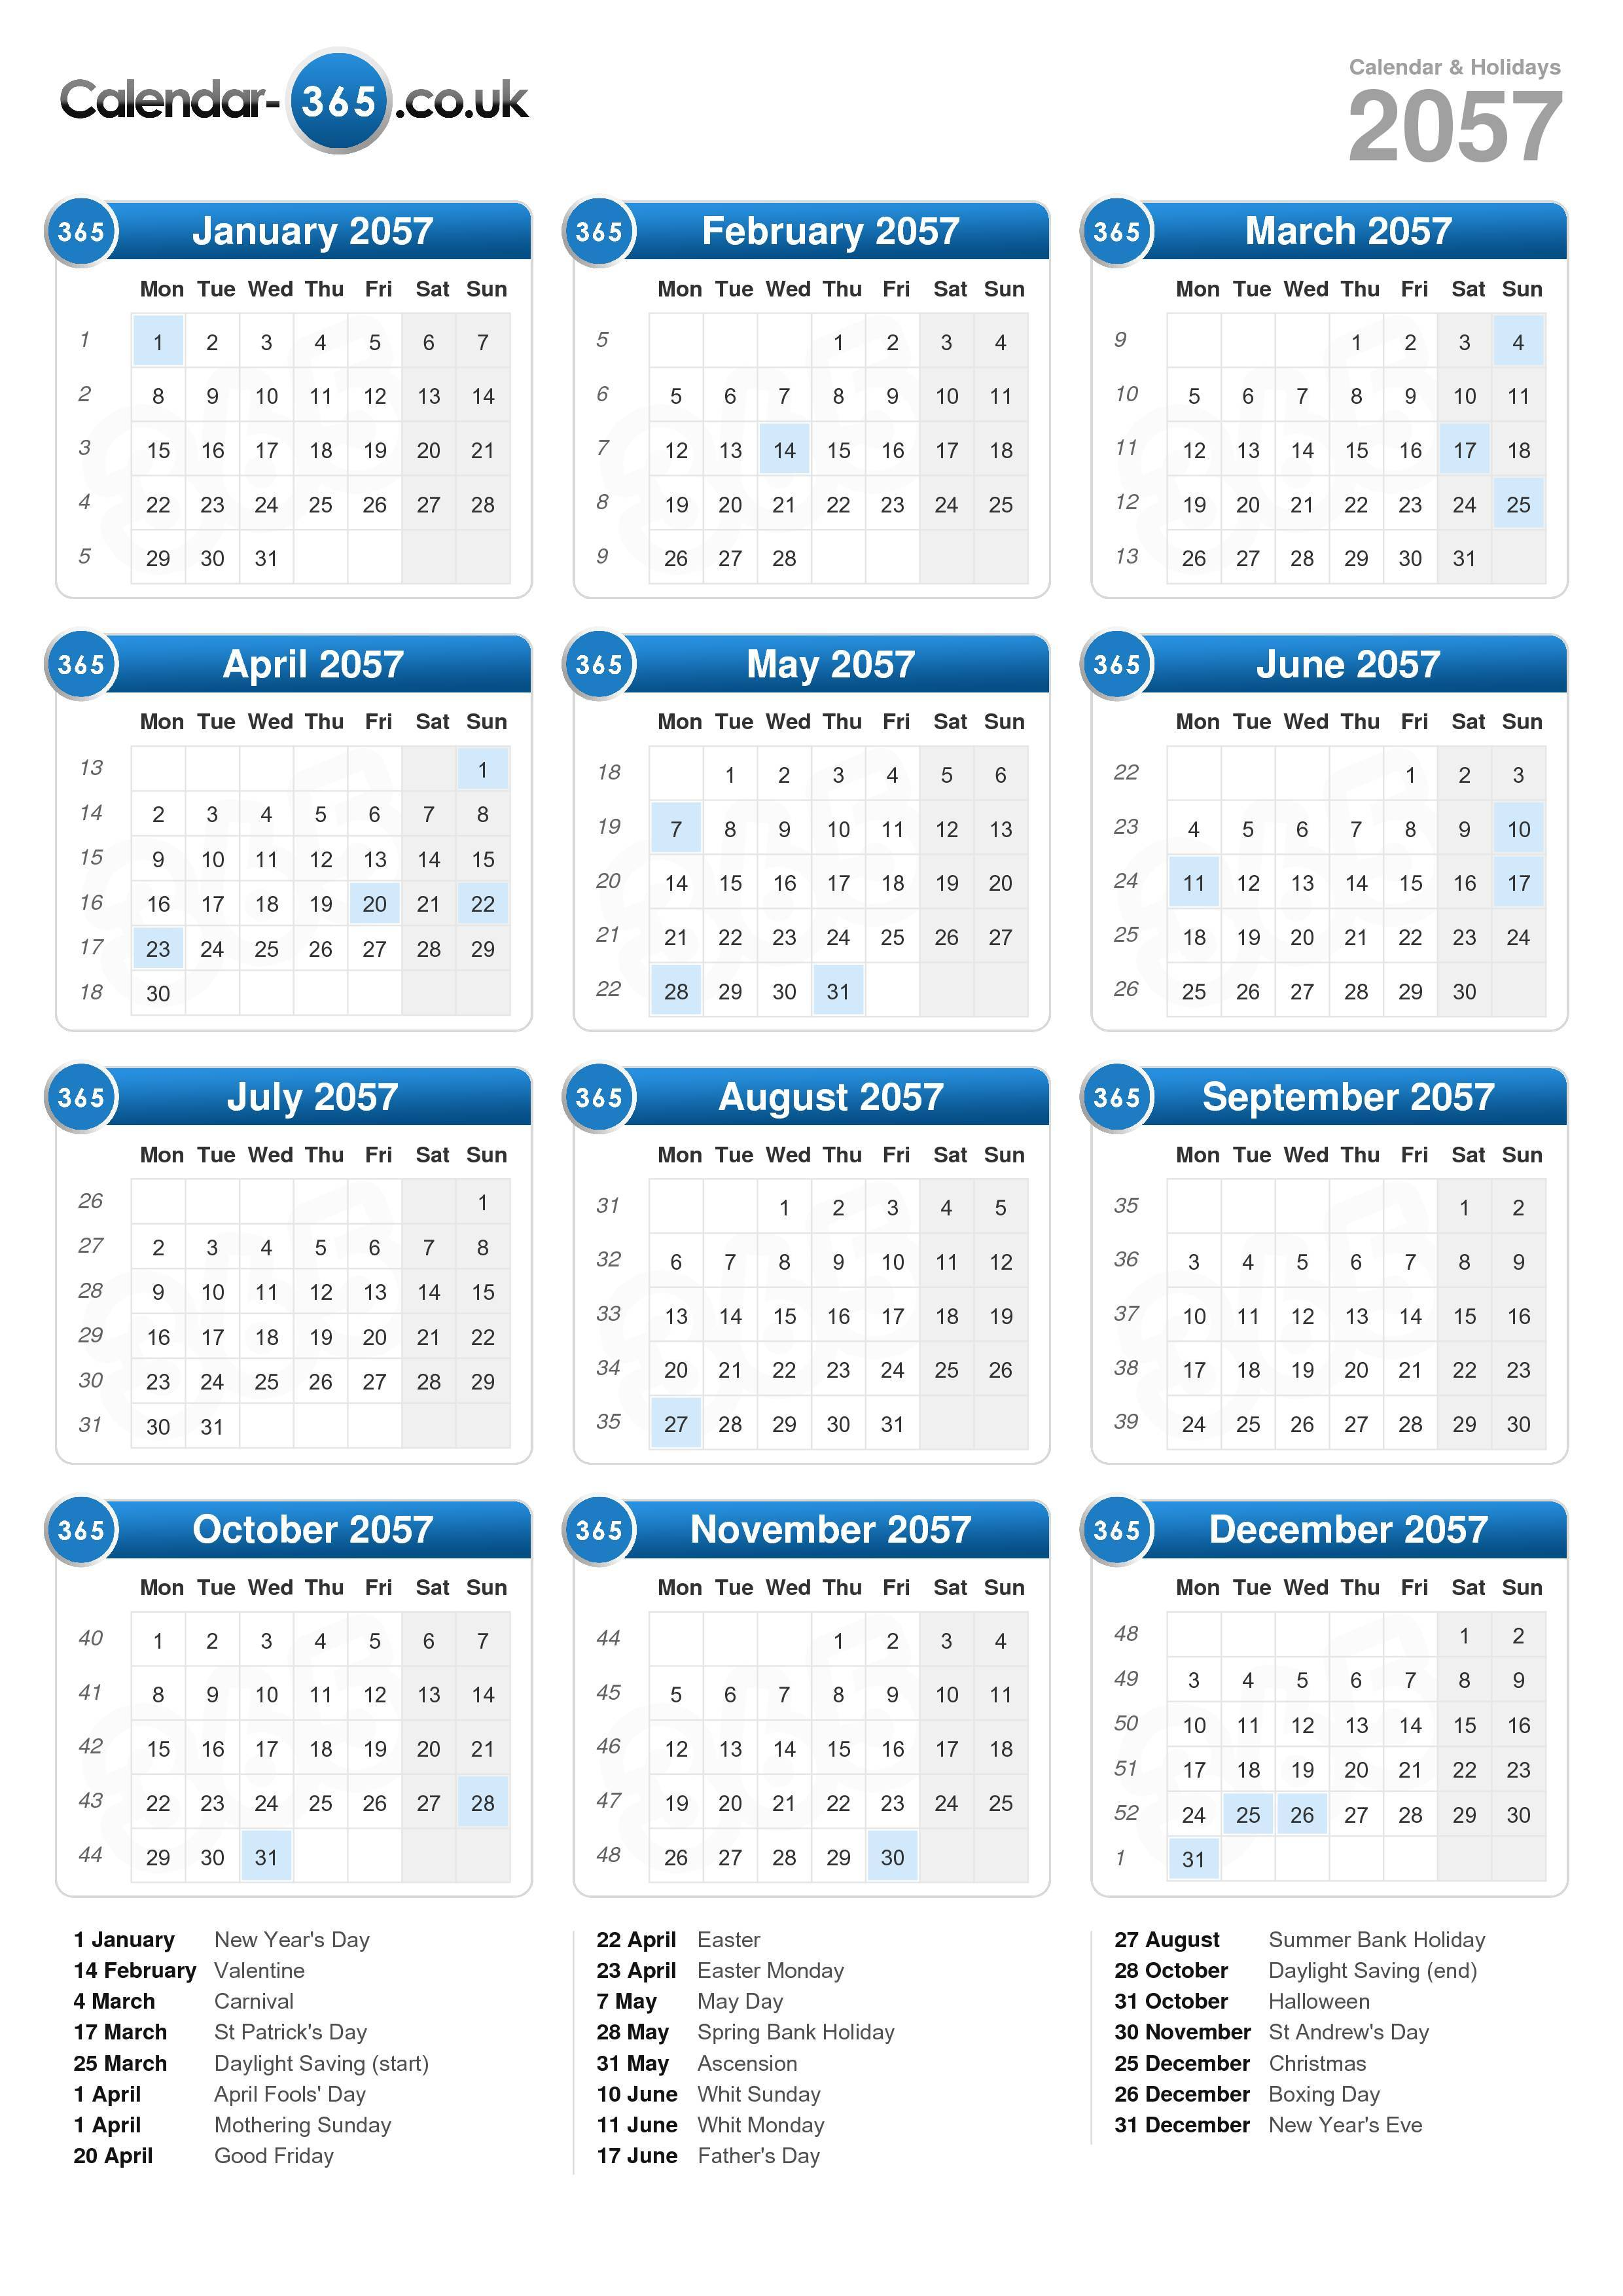 Download the calendar 2057 with holidays portrait format 1 page